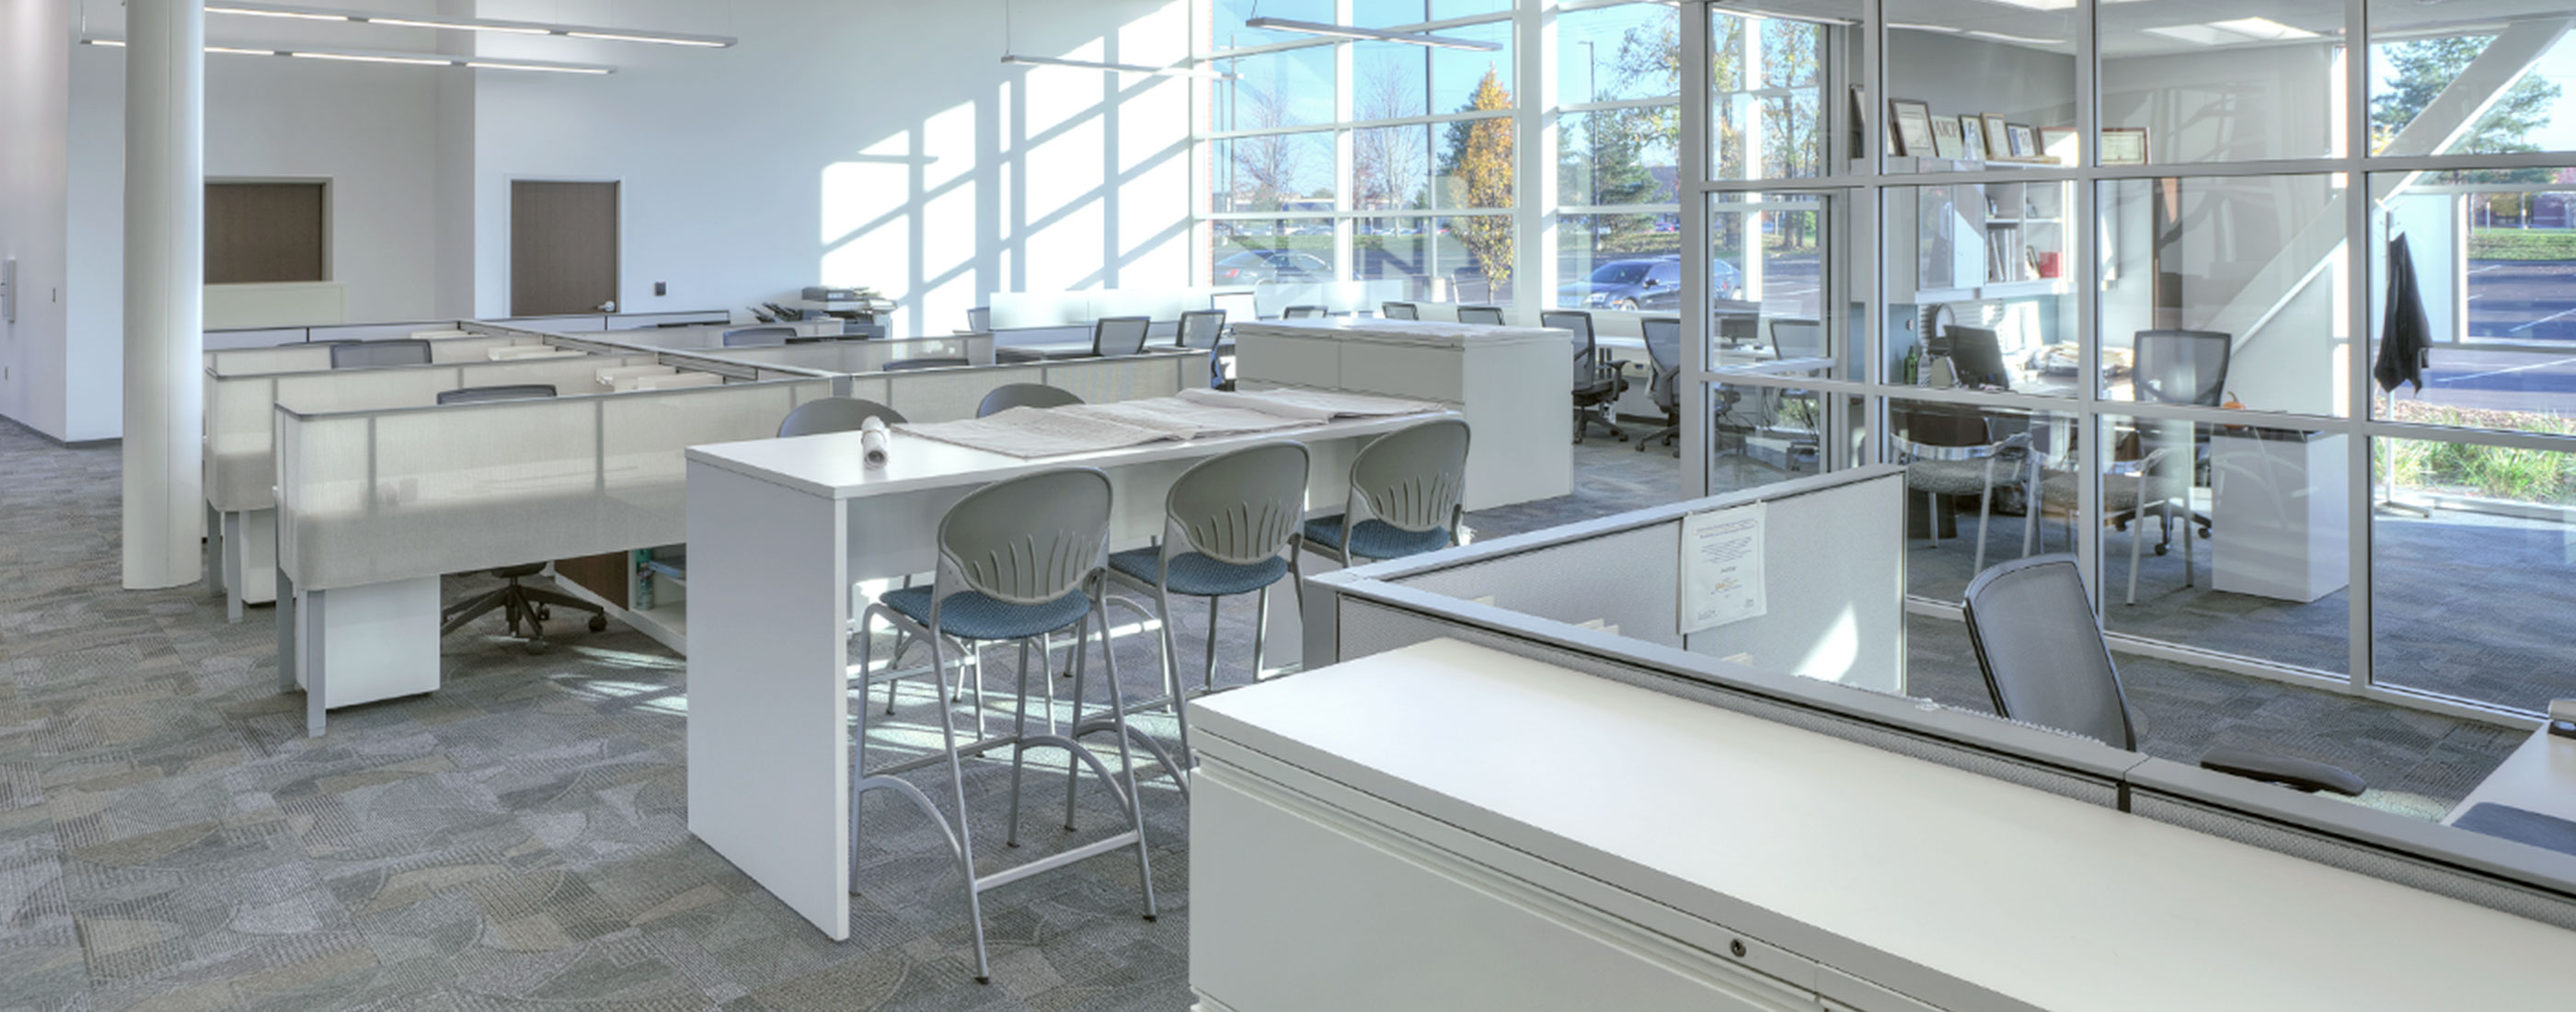 Bright, friendly office spaces about in Westland, Michigan's City Hall, designed by OHM Advisors